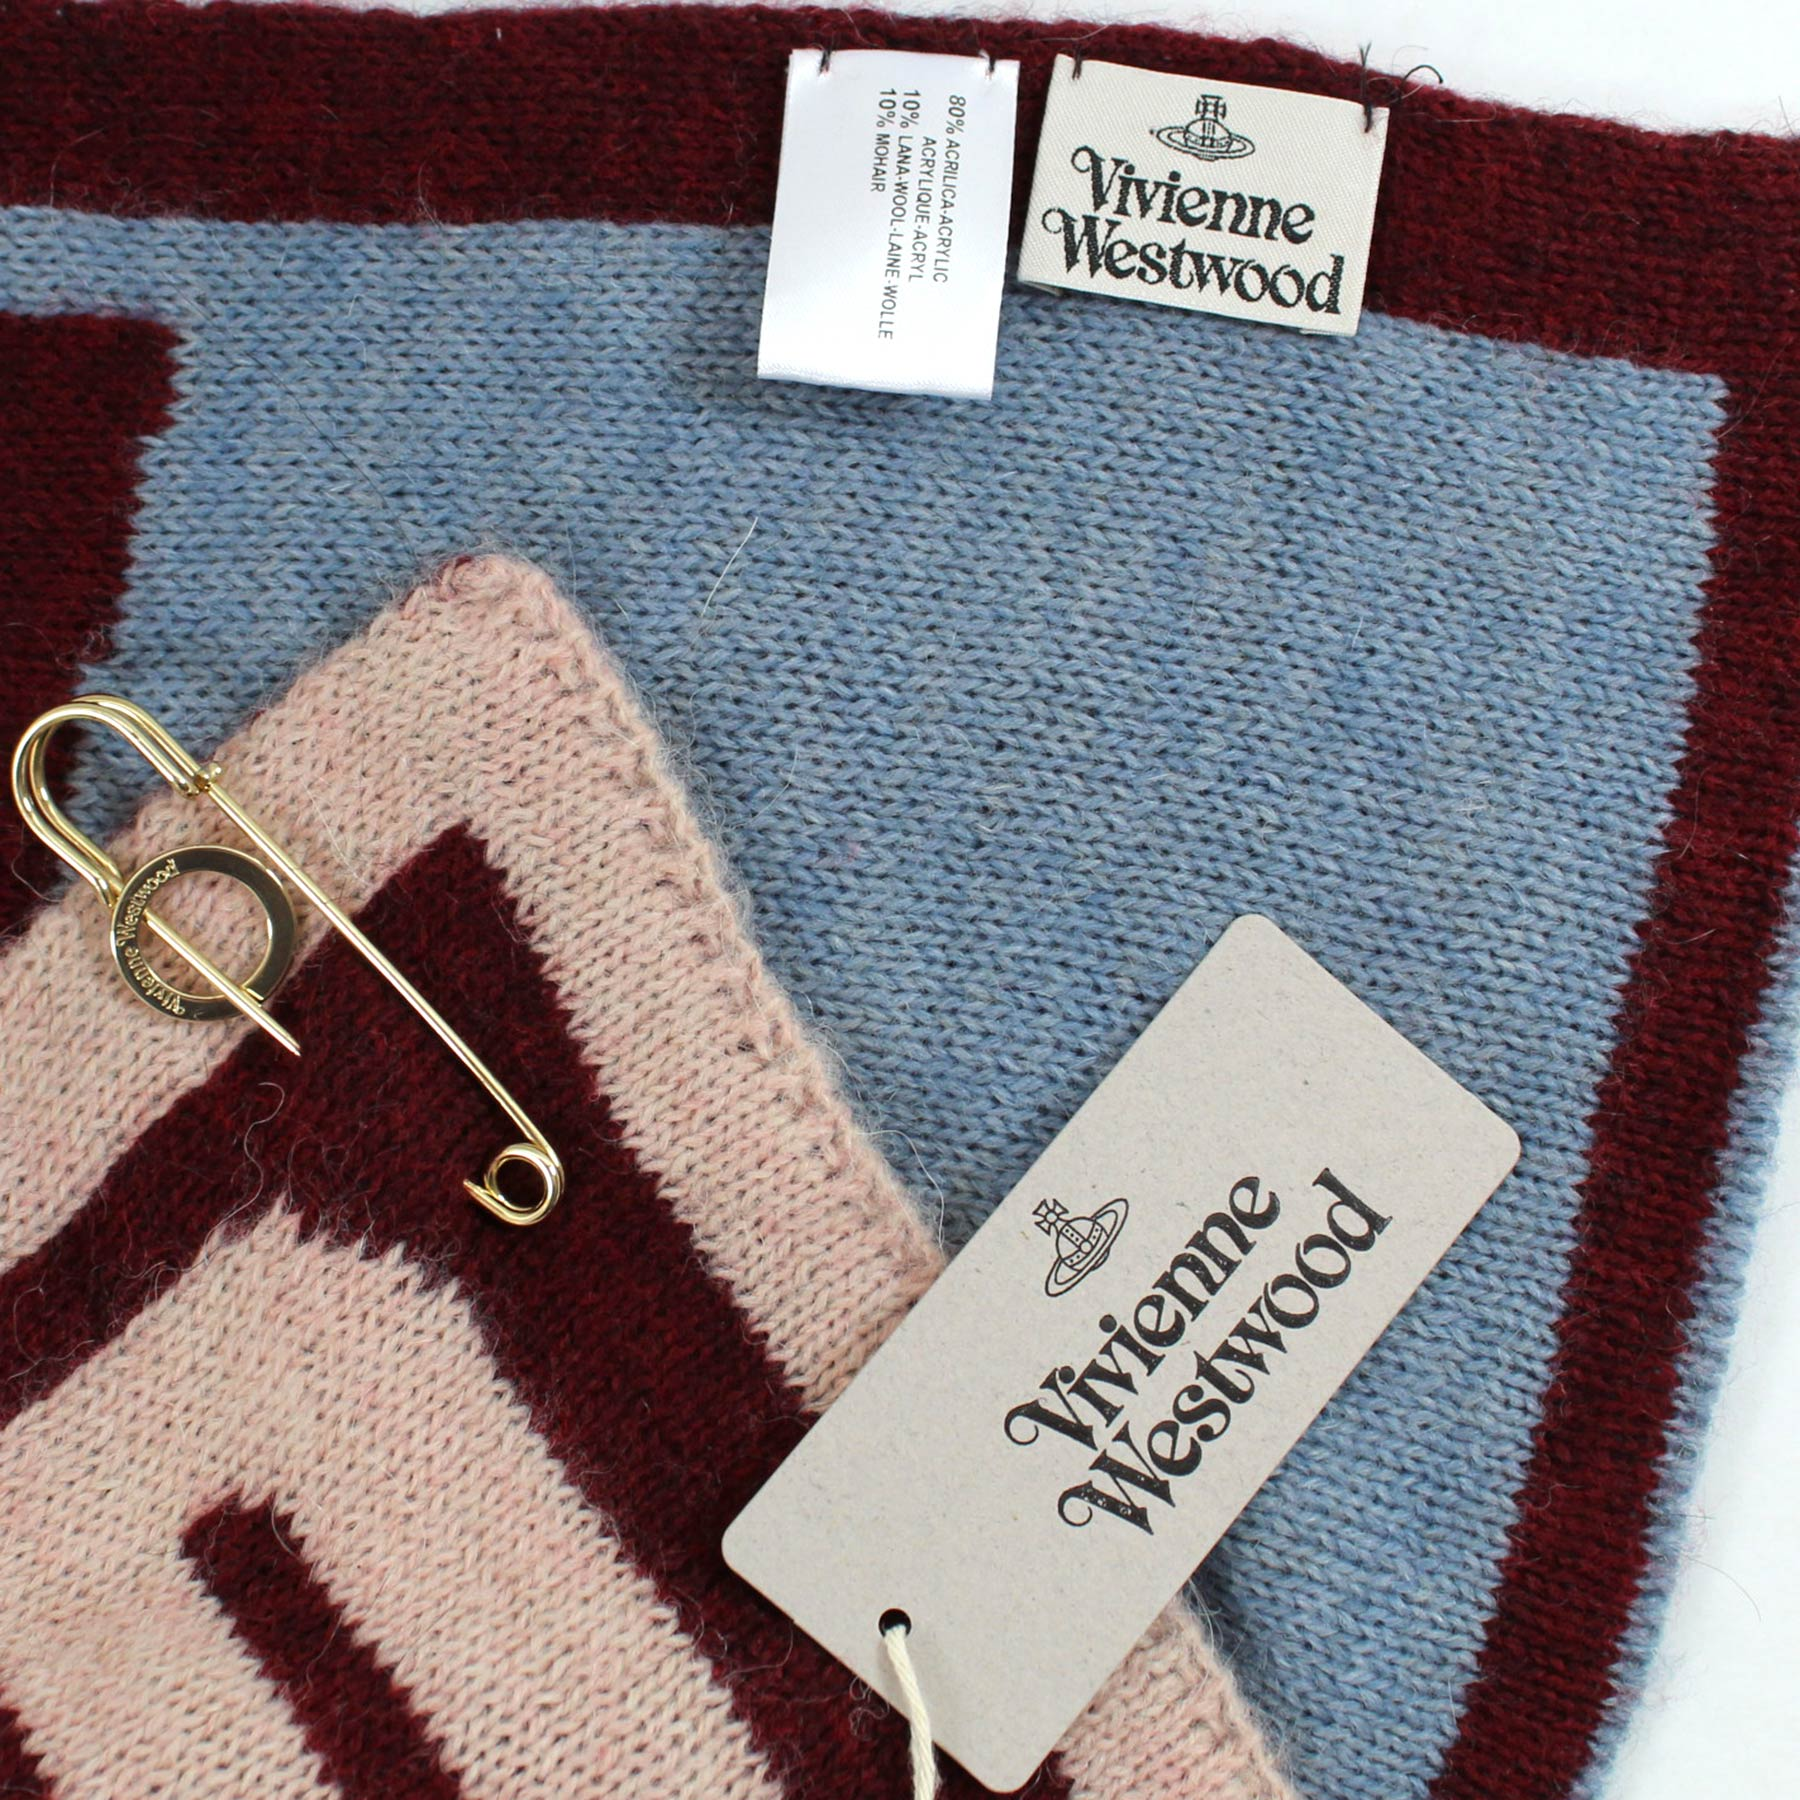 Vivienne Westwood Scarf Maroon Wool Blend Extra Large Square Scarf FINAL SALE